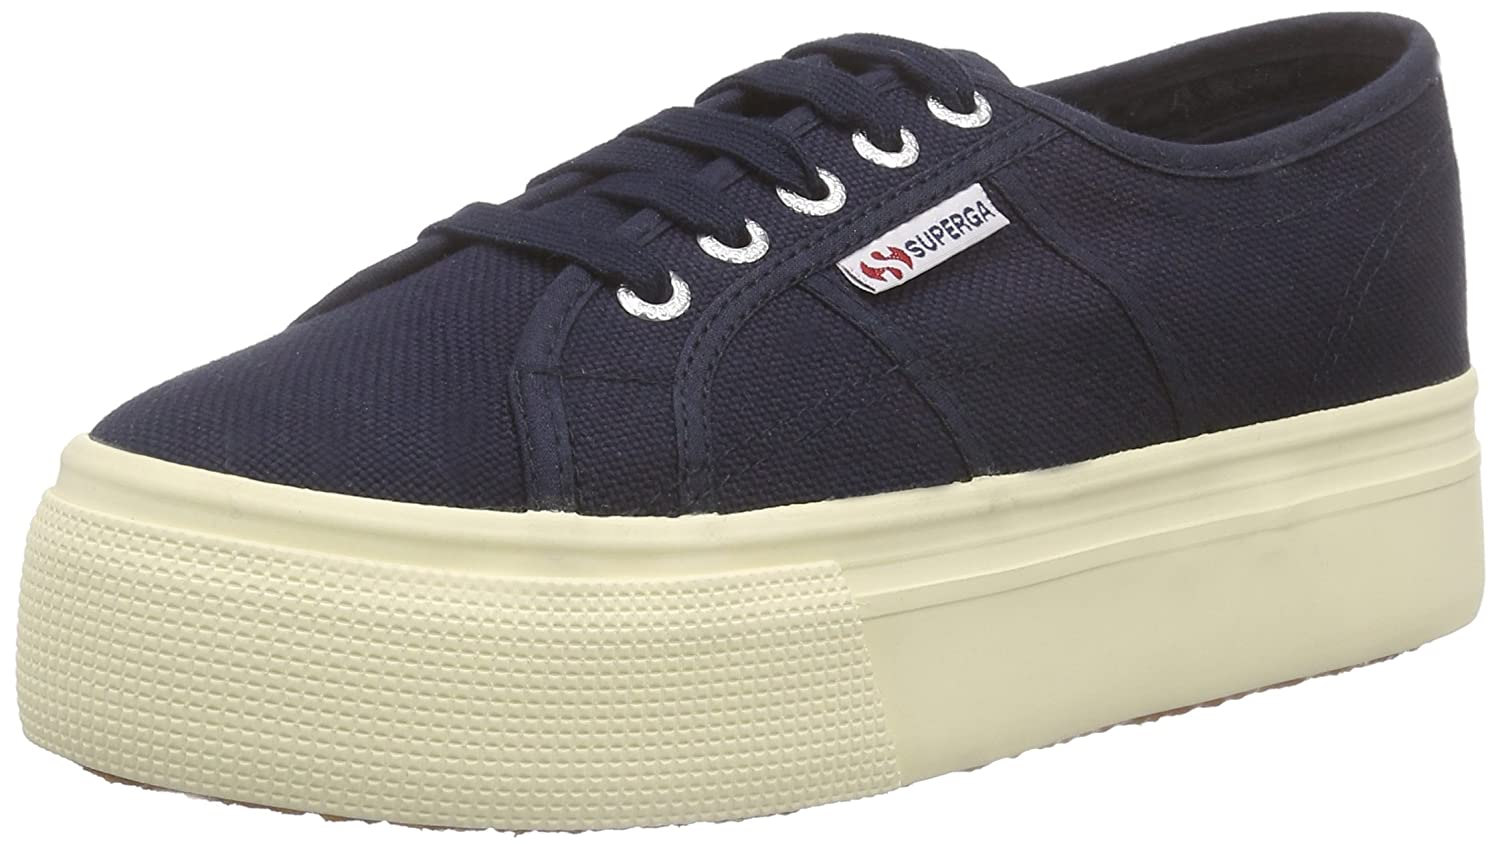 Superga 2790Cotw Linea Up And Down, Zapatillas Unisex adulto 36 EU|Azul (933 Navy)